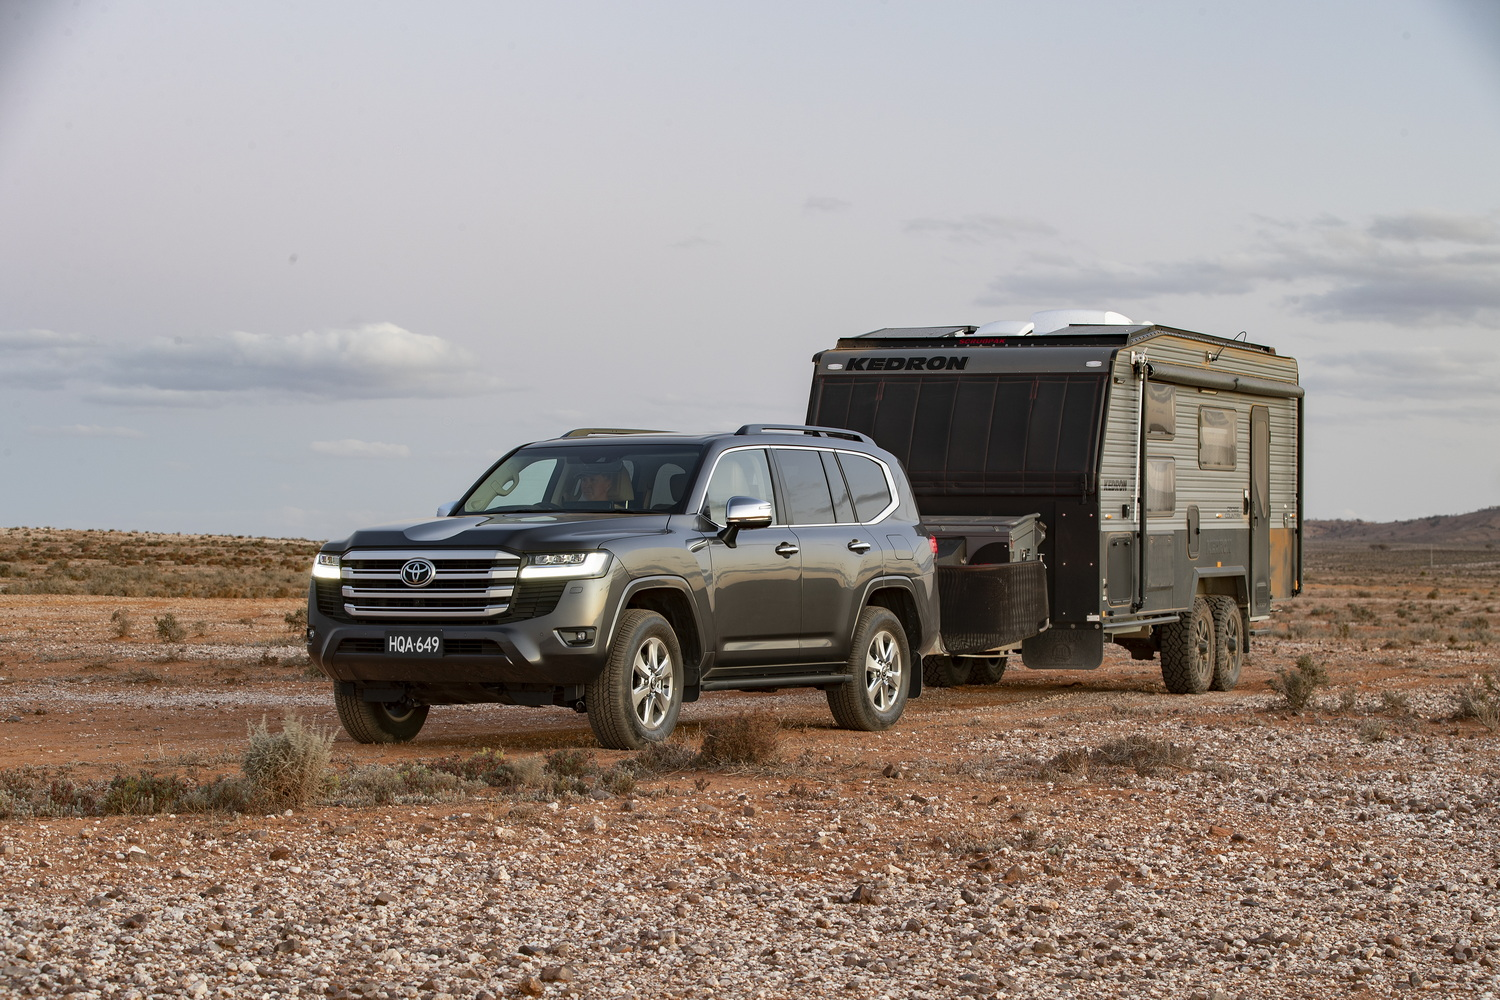 3500kg tow-rated wagons – which can tow the most?